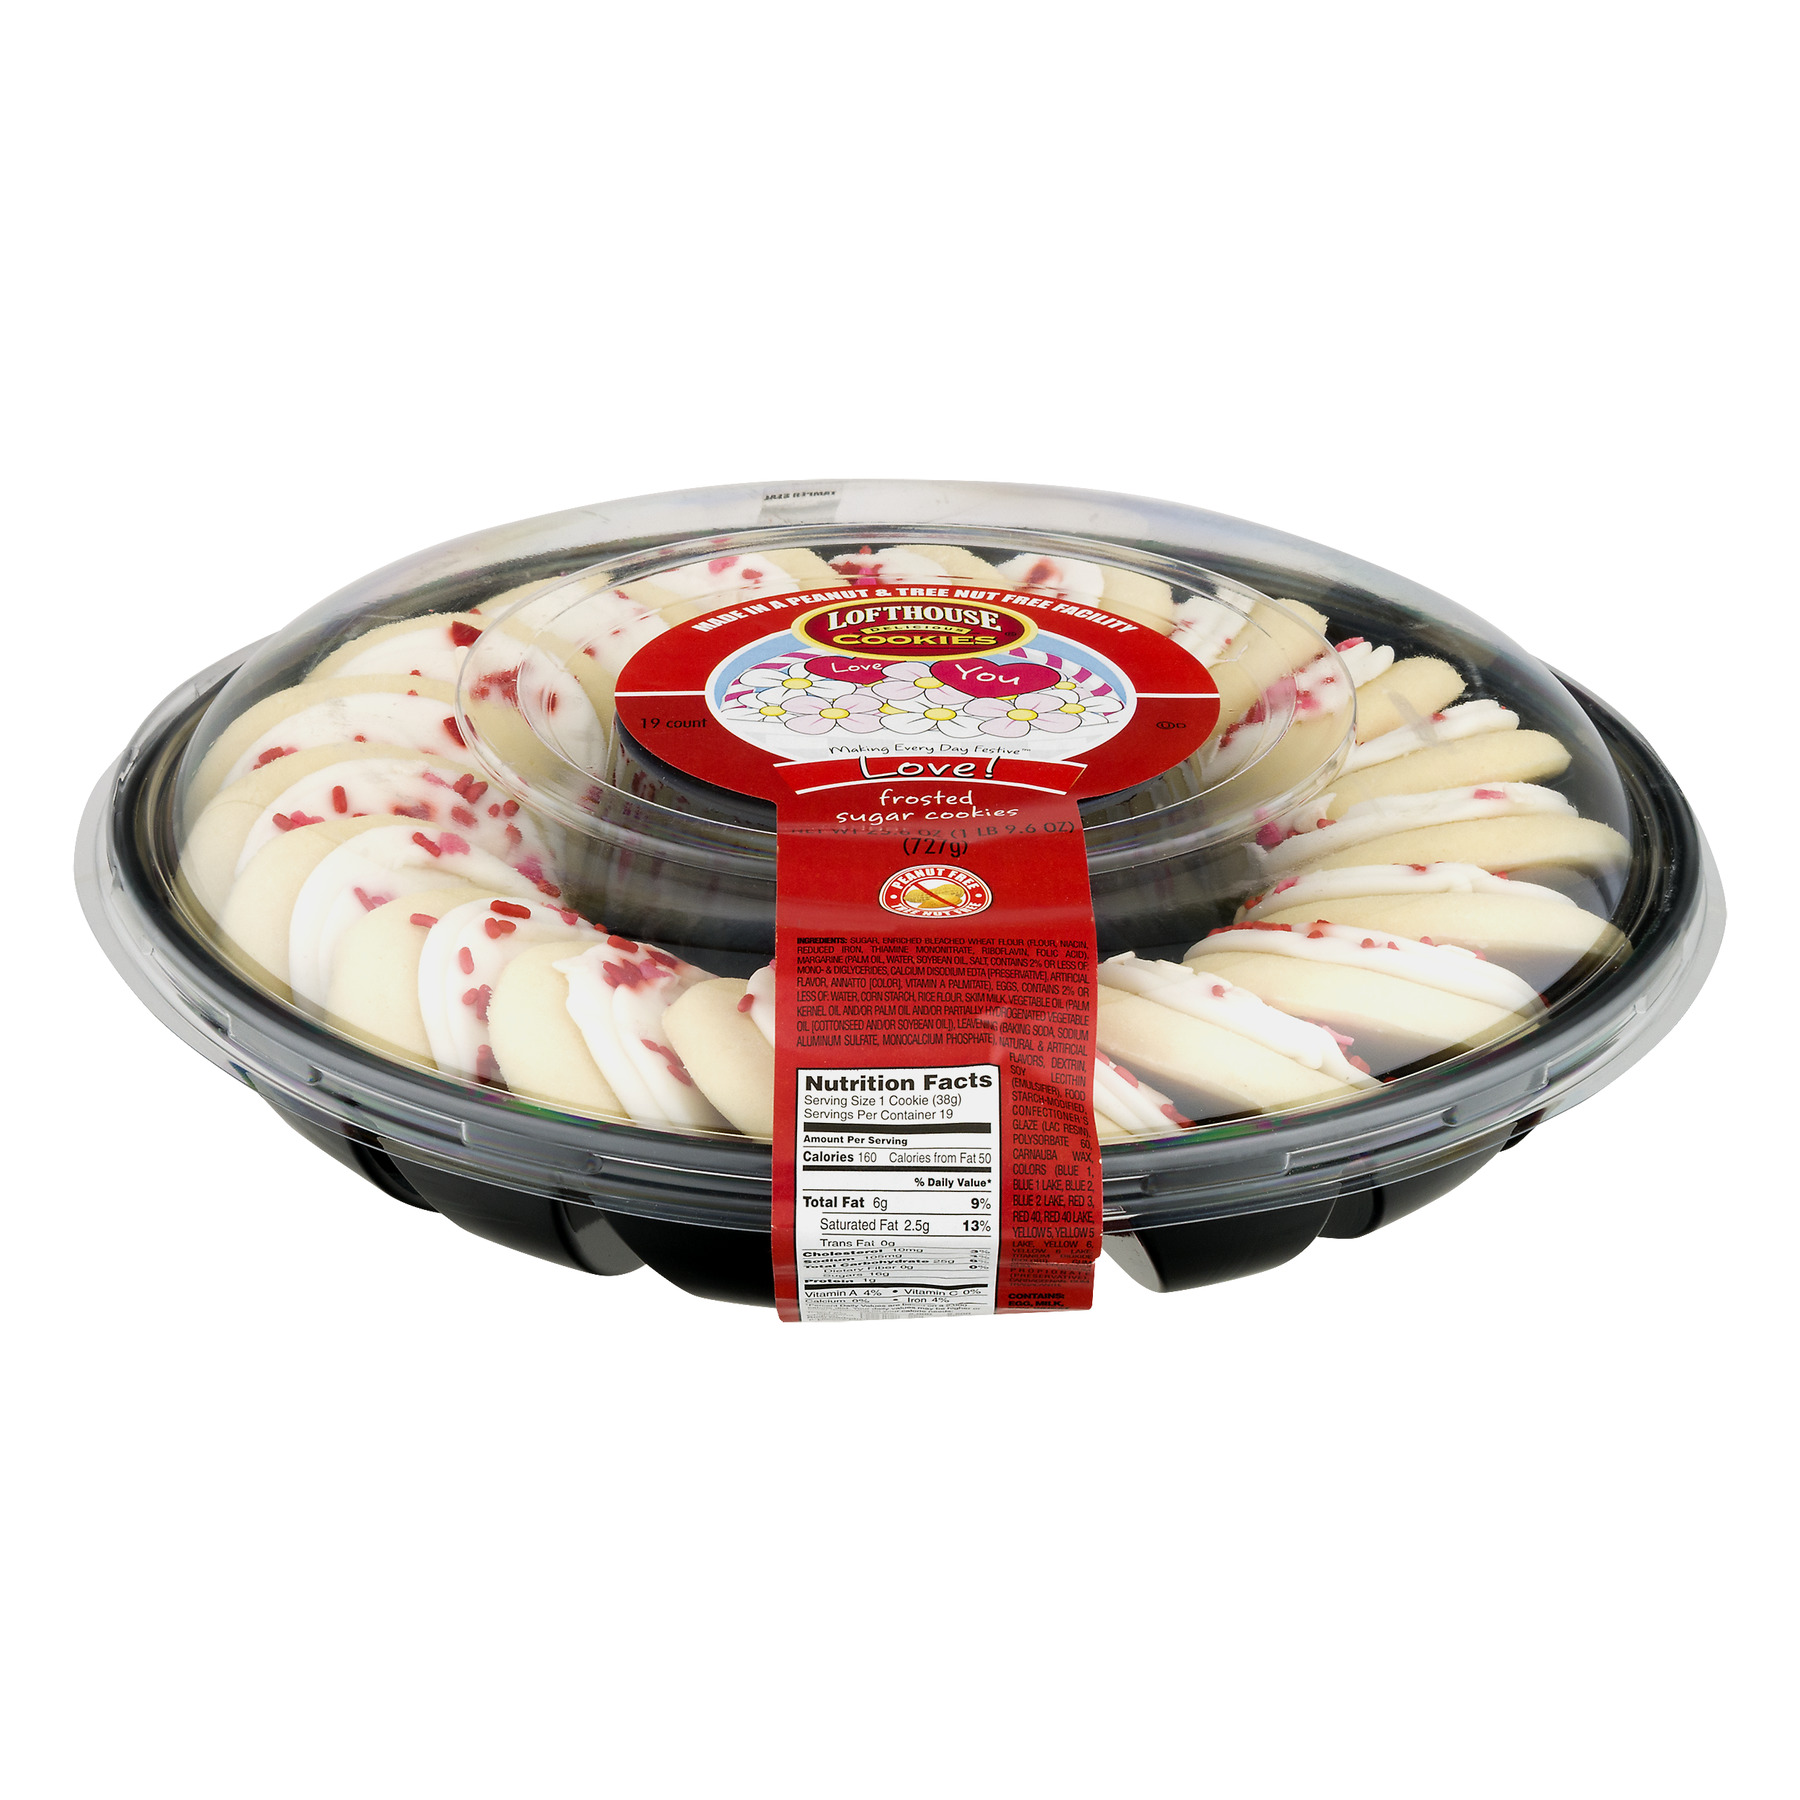 Lofthouse Love! Frosted Sugar Cookies, 25.6 OZ